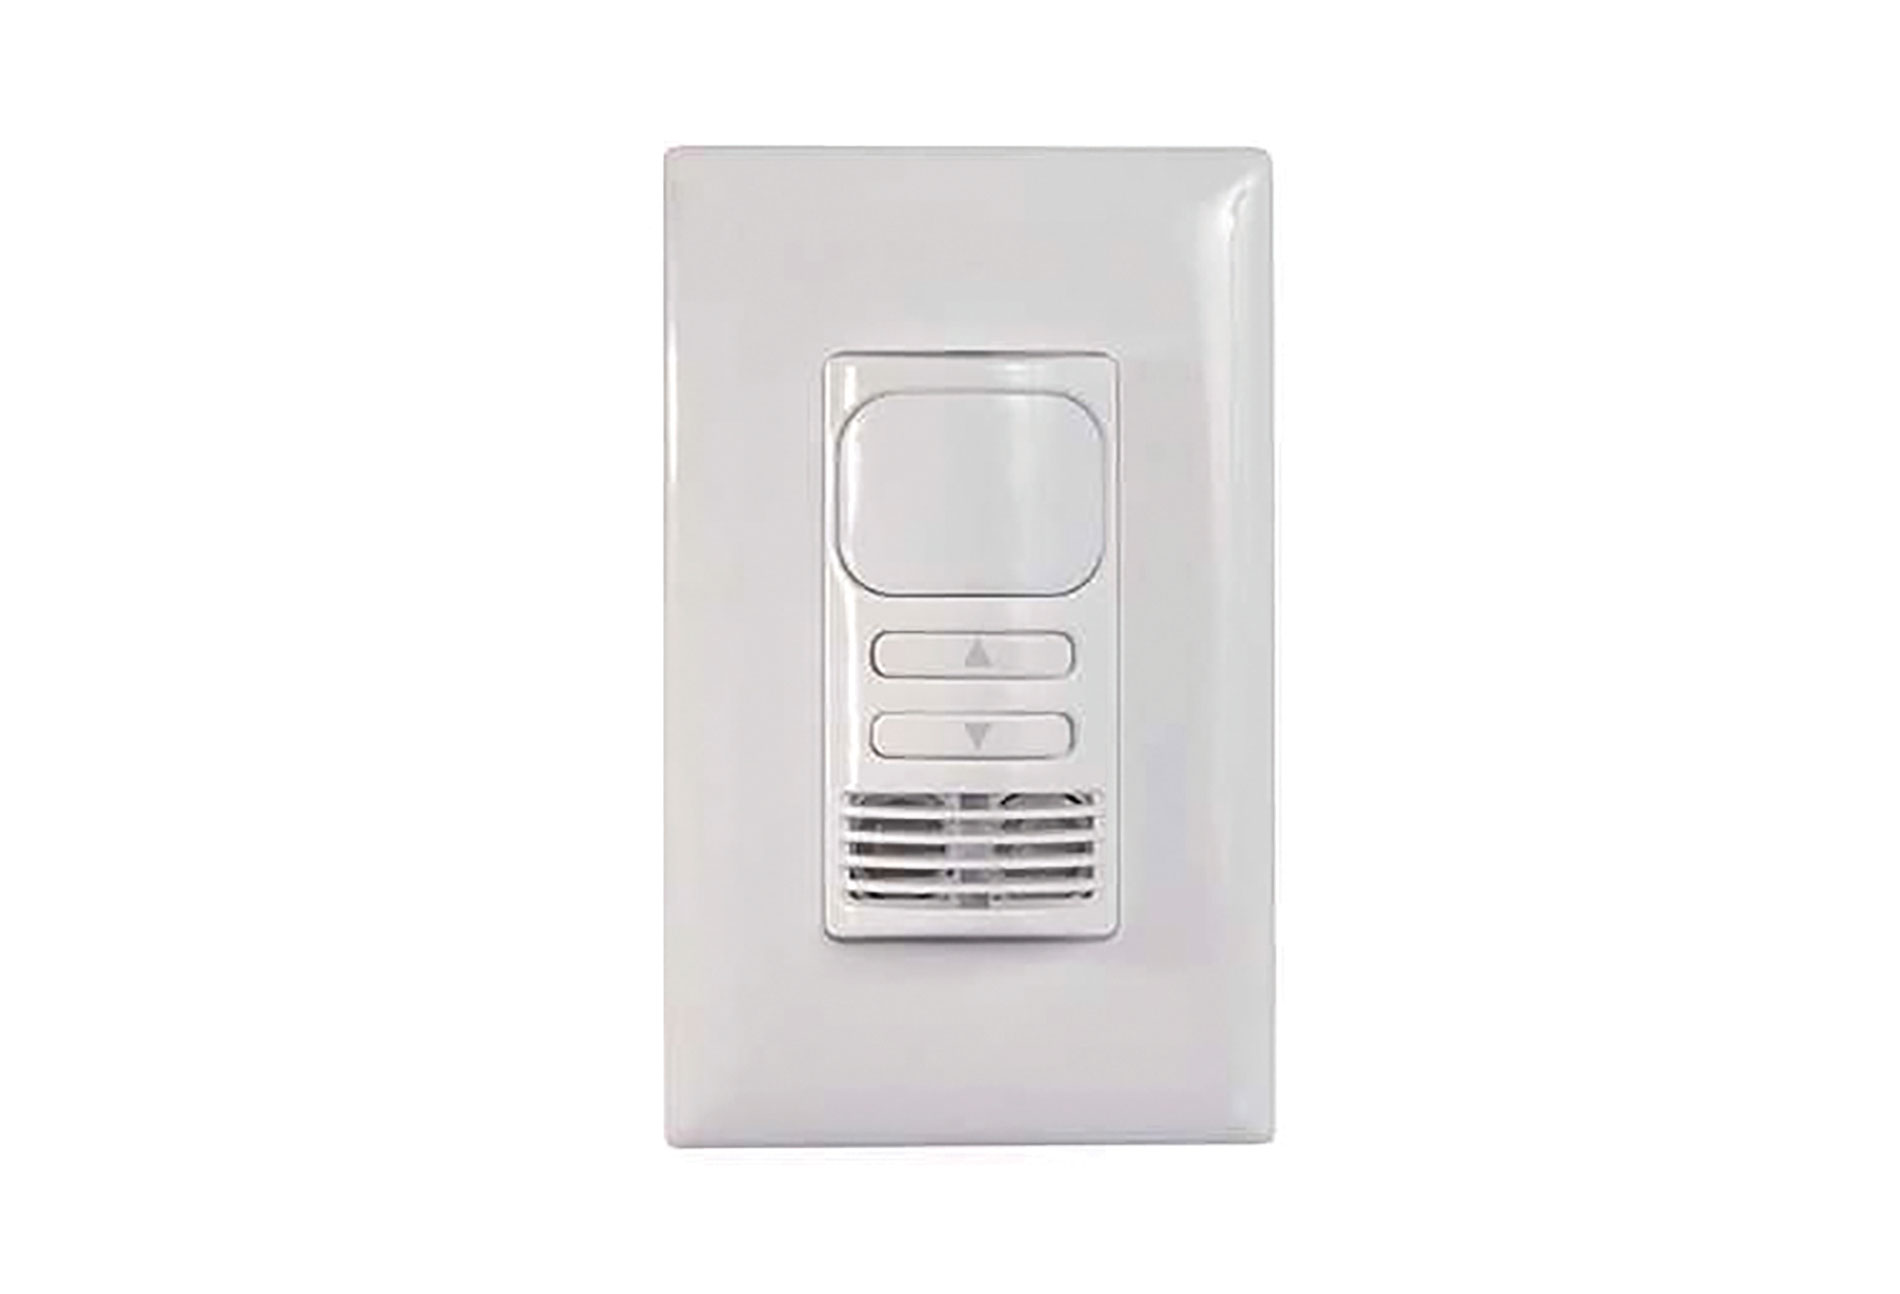 Hubbell Control Solutions' LightHawk Wall Switch